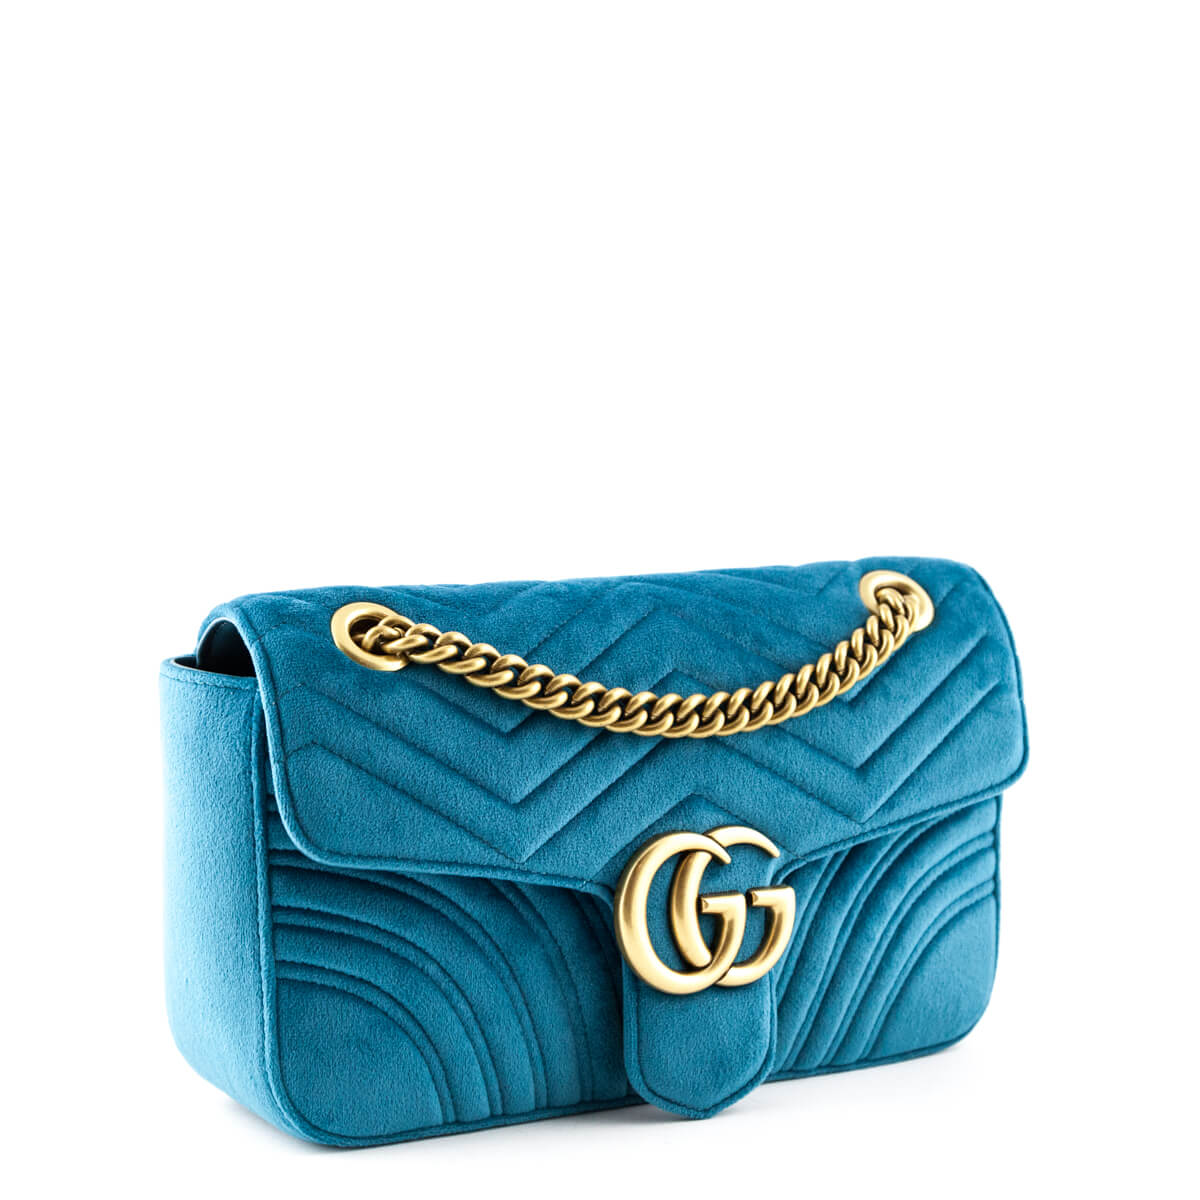 ef75761f3fc4 ... Gucci Petrol Blue Velvet Small GG Marmont Shoulder Bag - LOVE that BAG  - Preowned Authentic ...